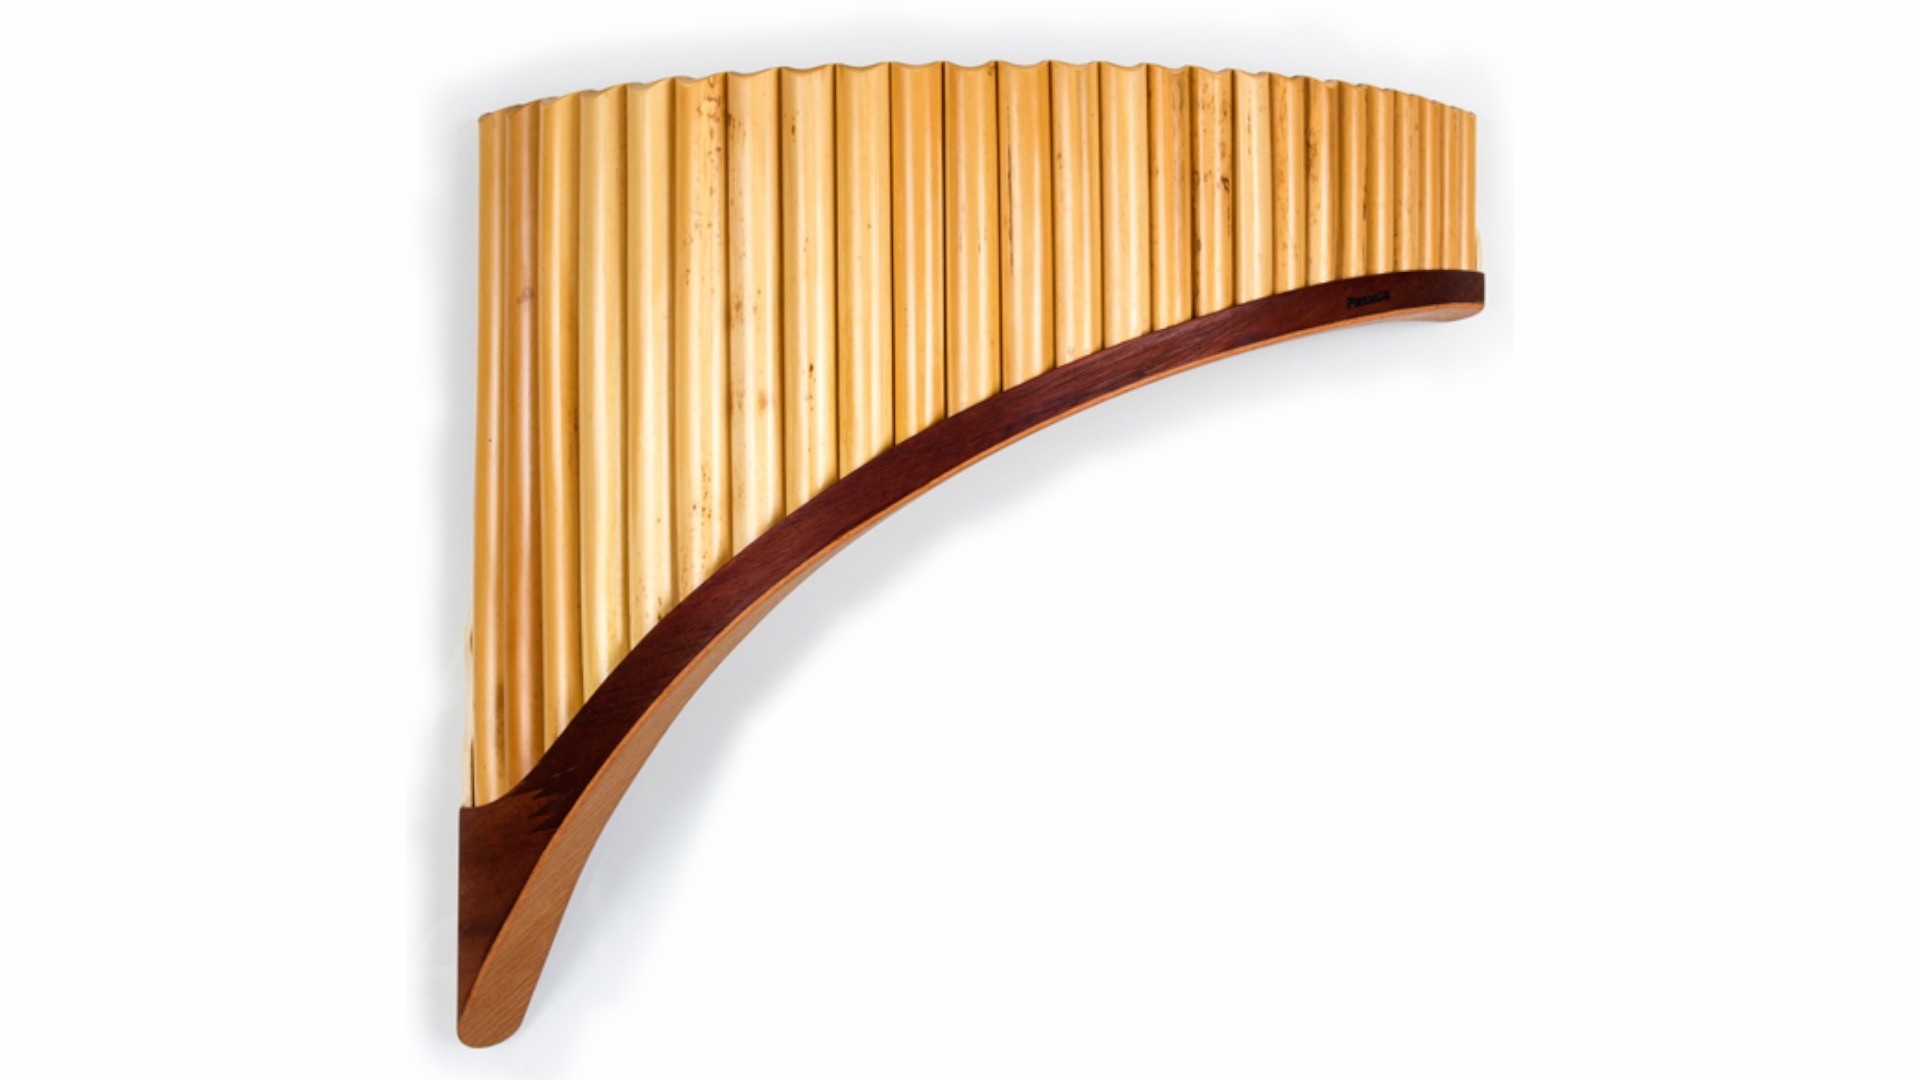 Pan Flute (Stopped pipe)